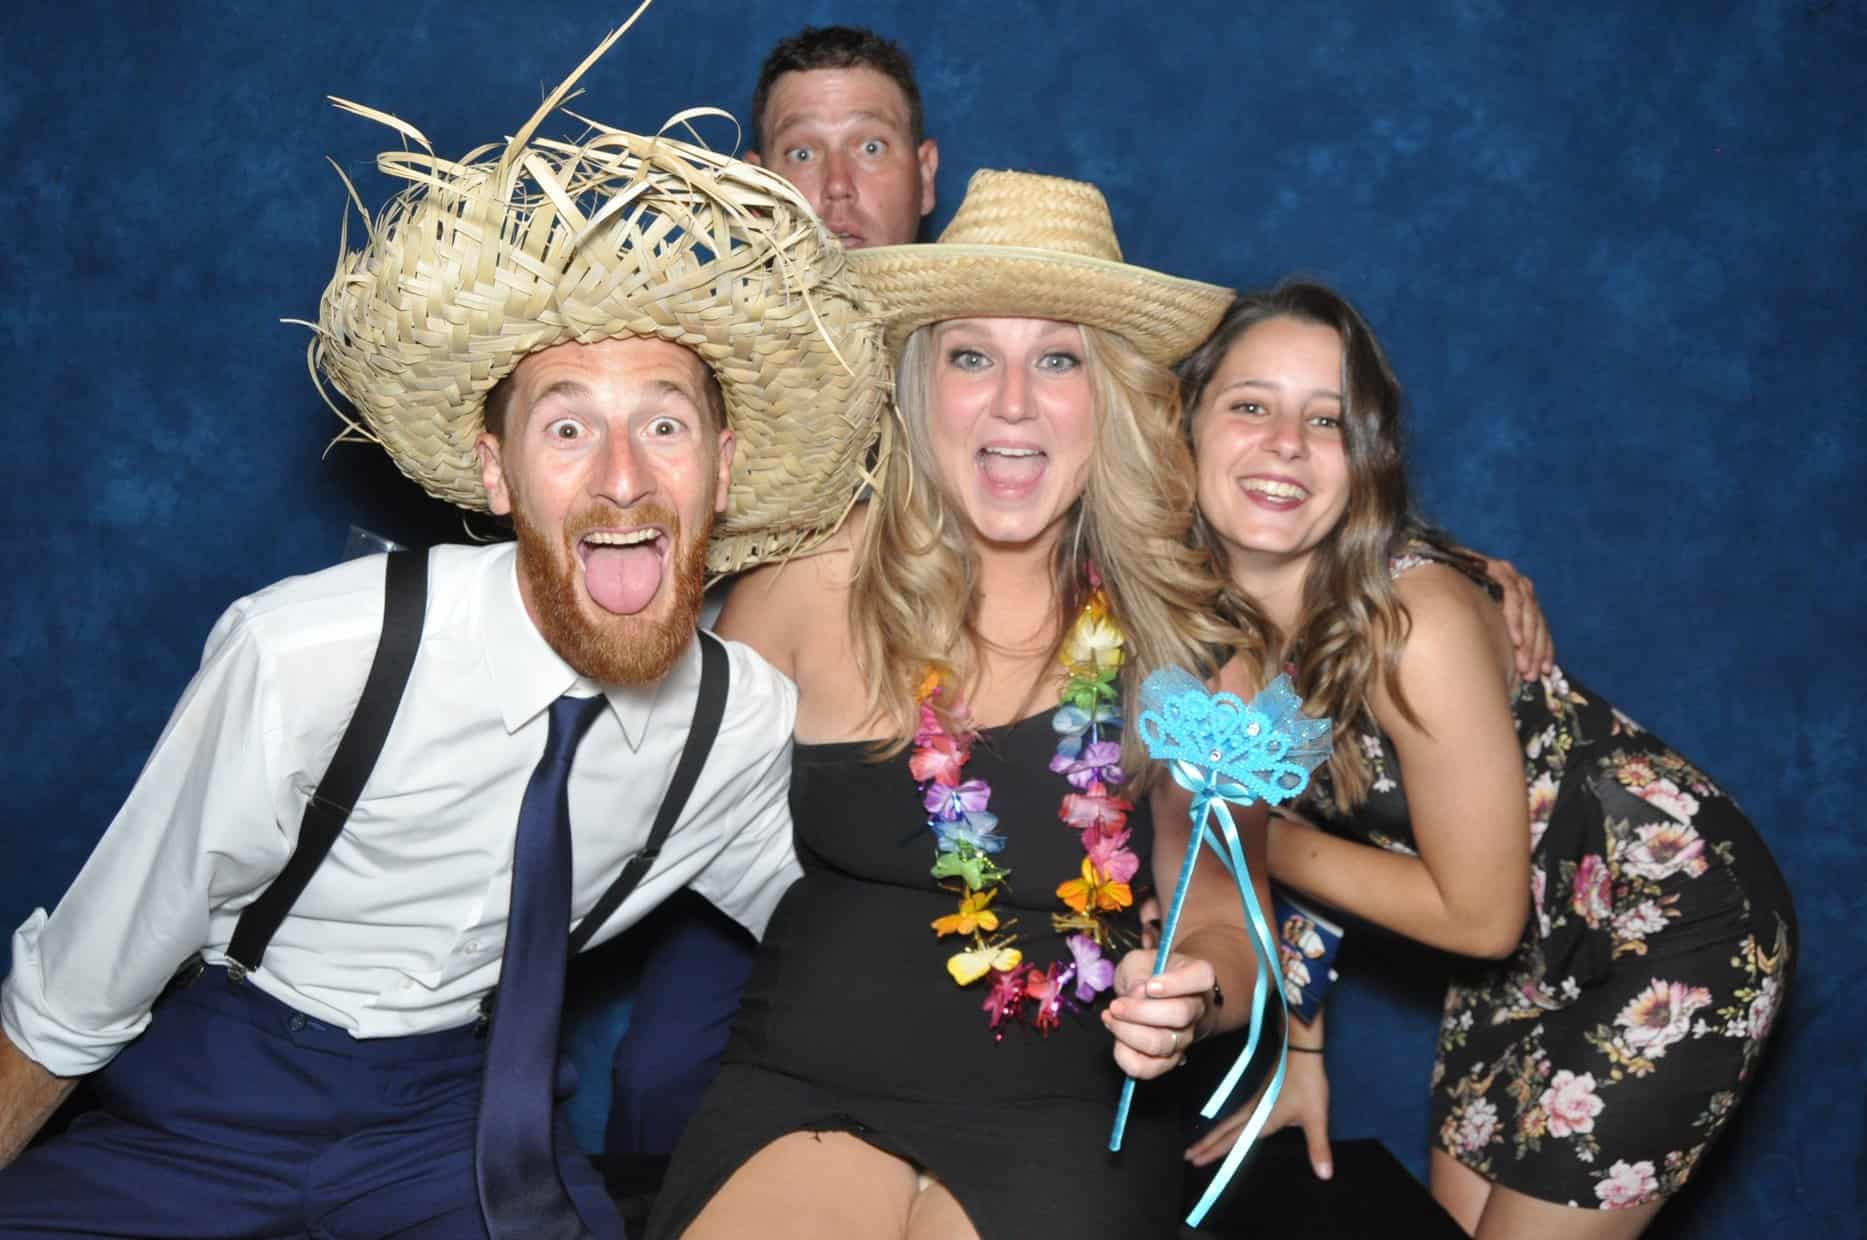 photo booth picture with straw hats and wand prop